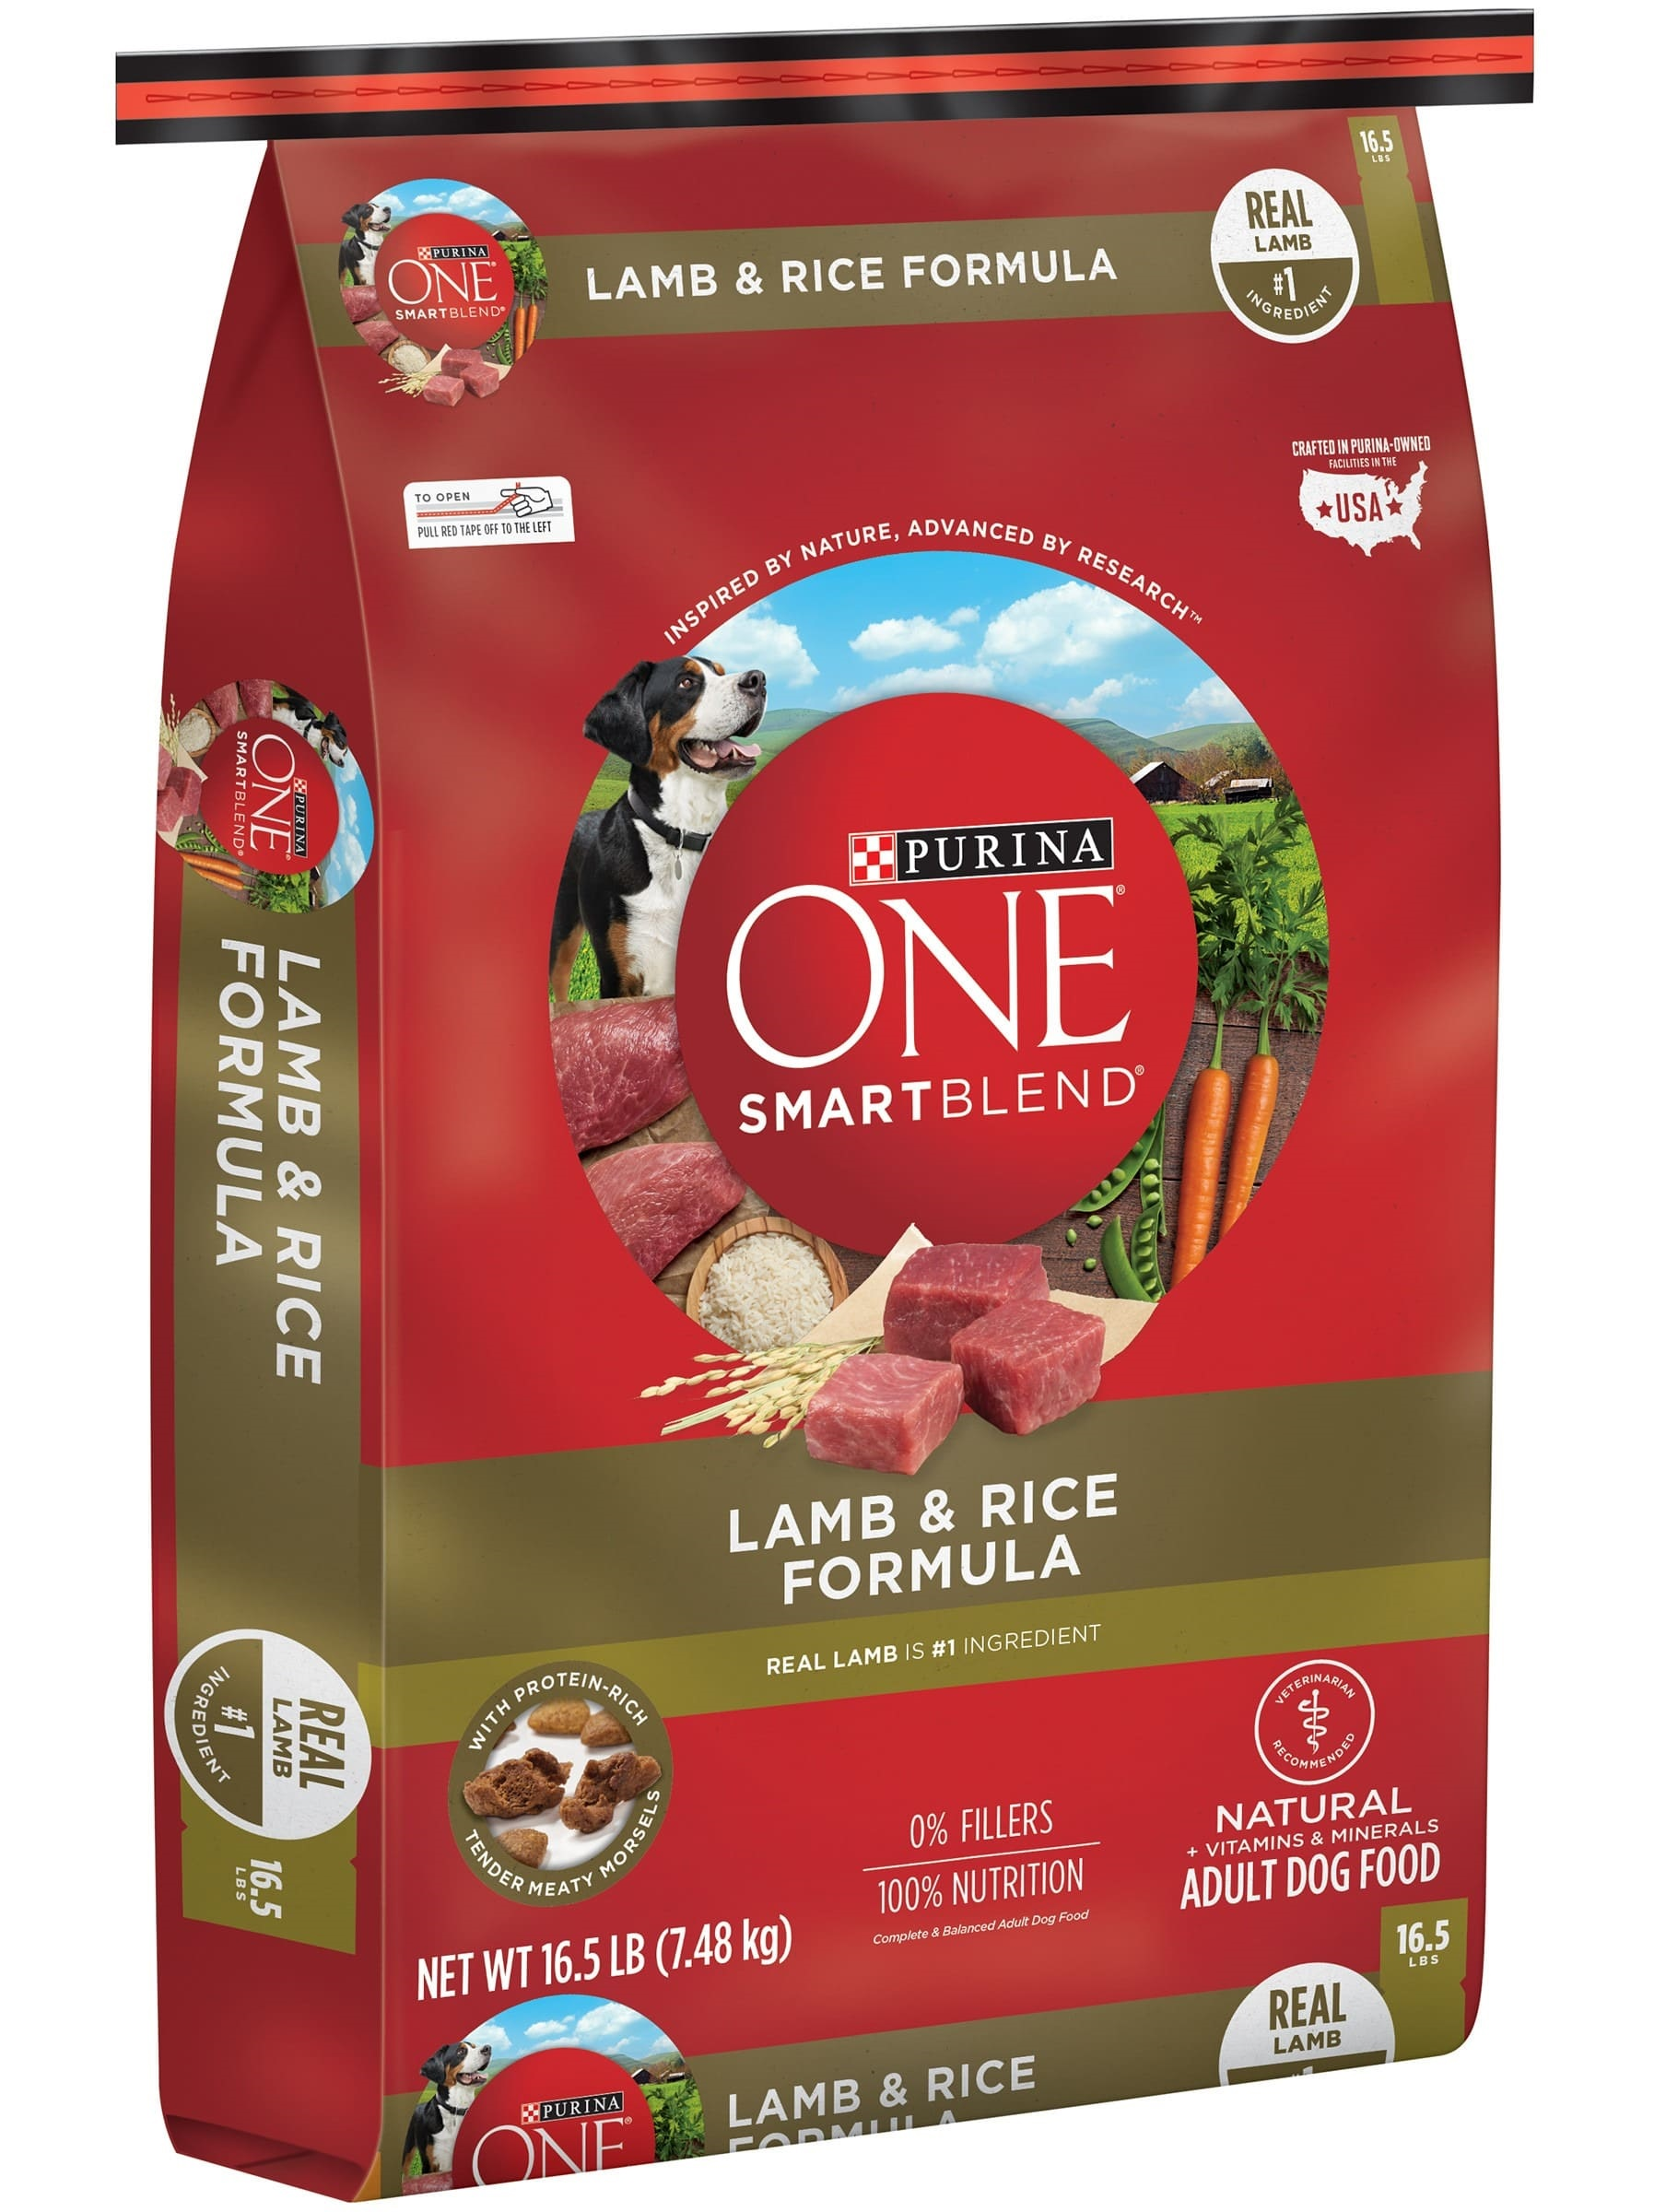 One Smart Blend is well-balanced for adult dogs